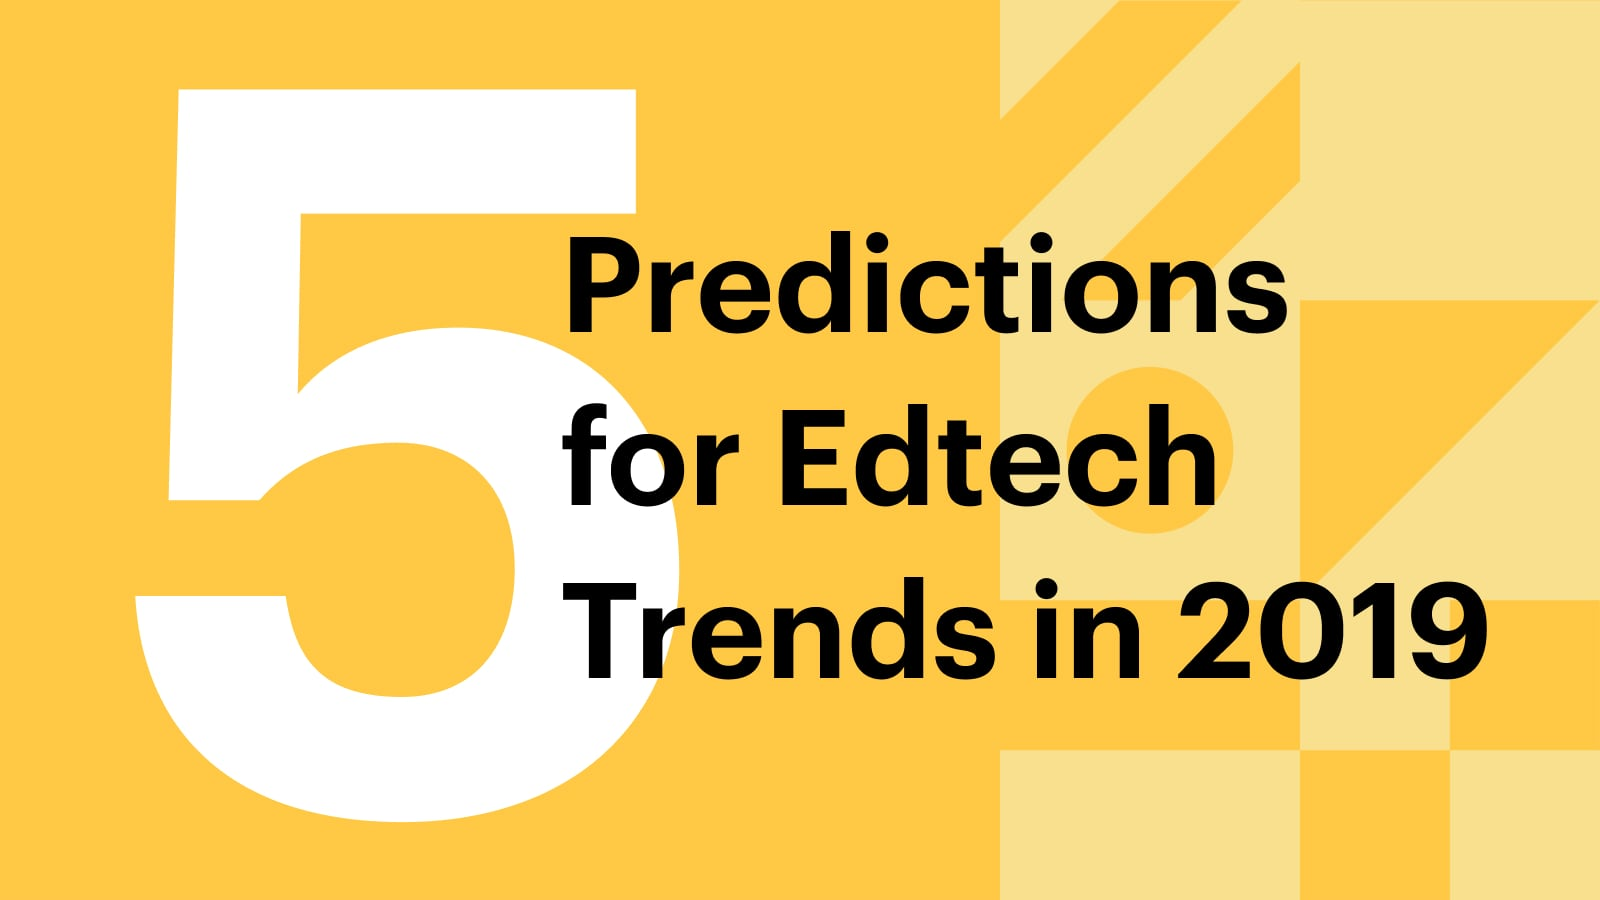 Five Predictions for Edtech Trends in 2019